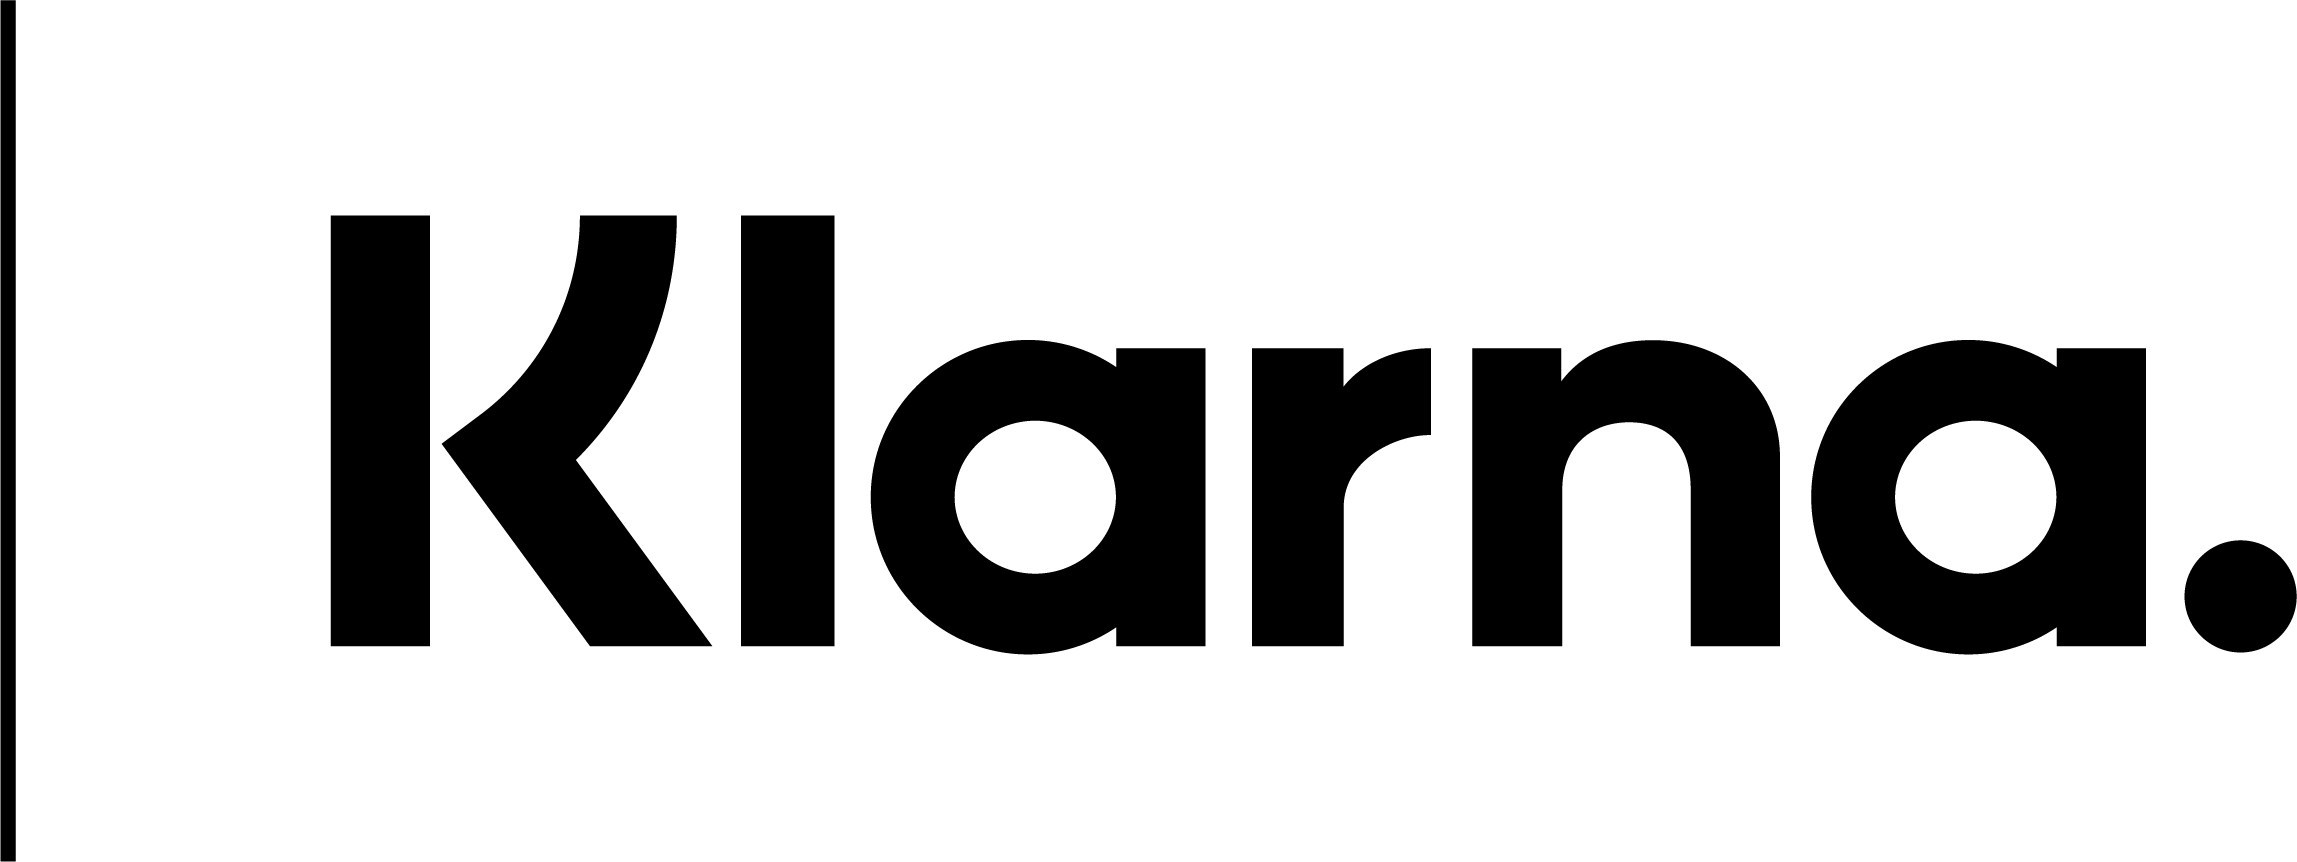 Extract names of all shops on klarna.com